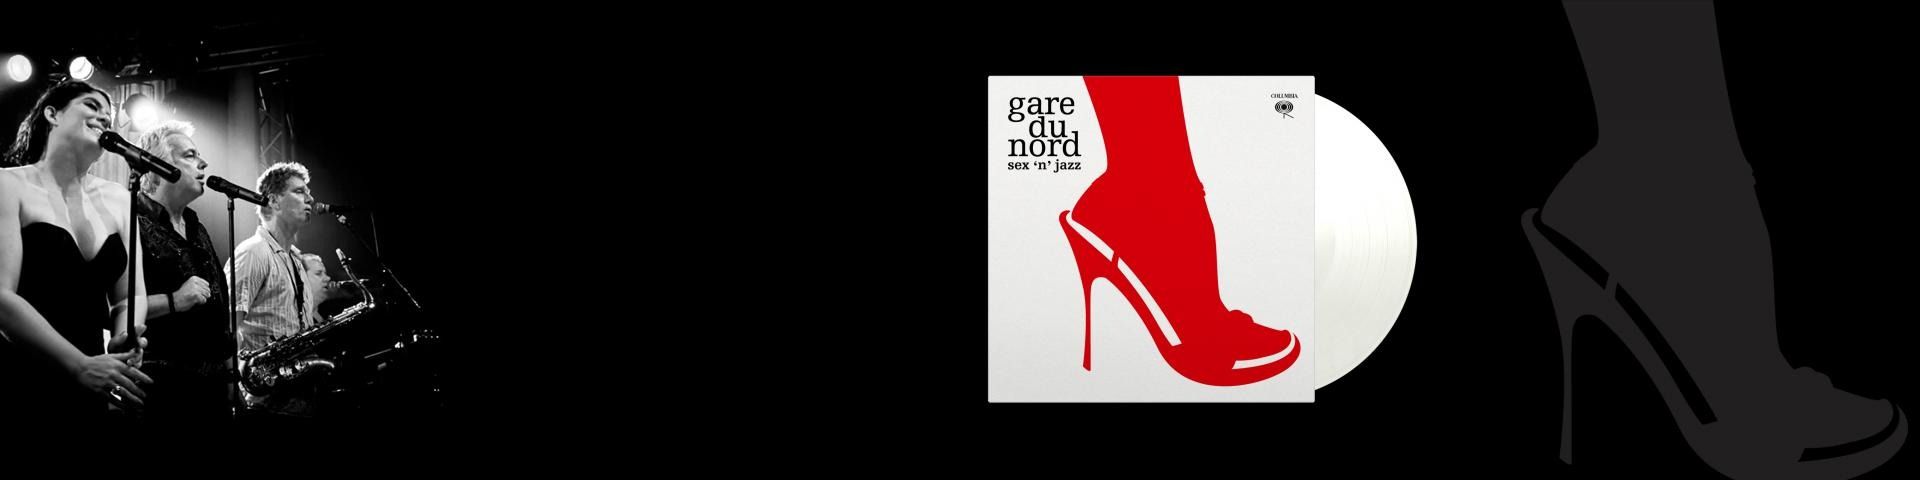 Would gare du nord sex n jazz